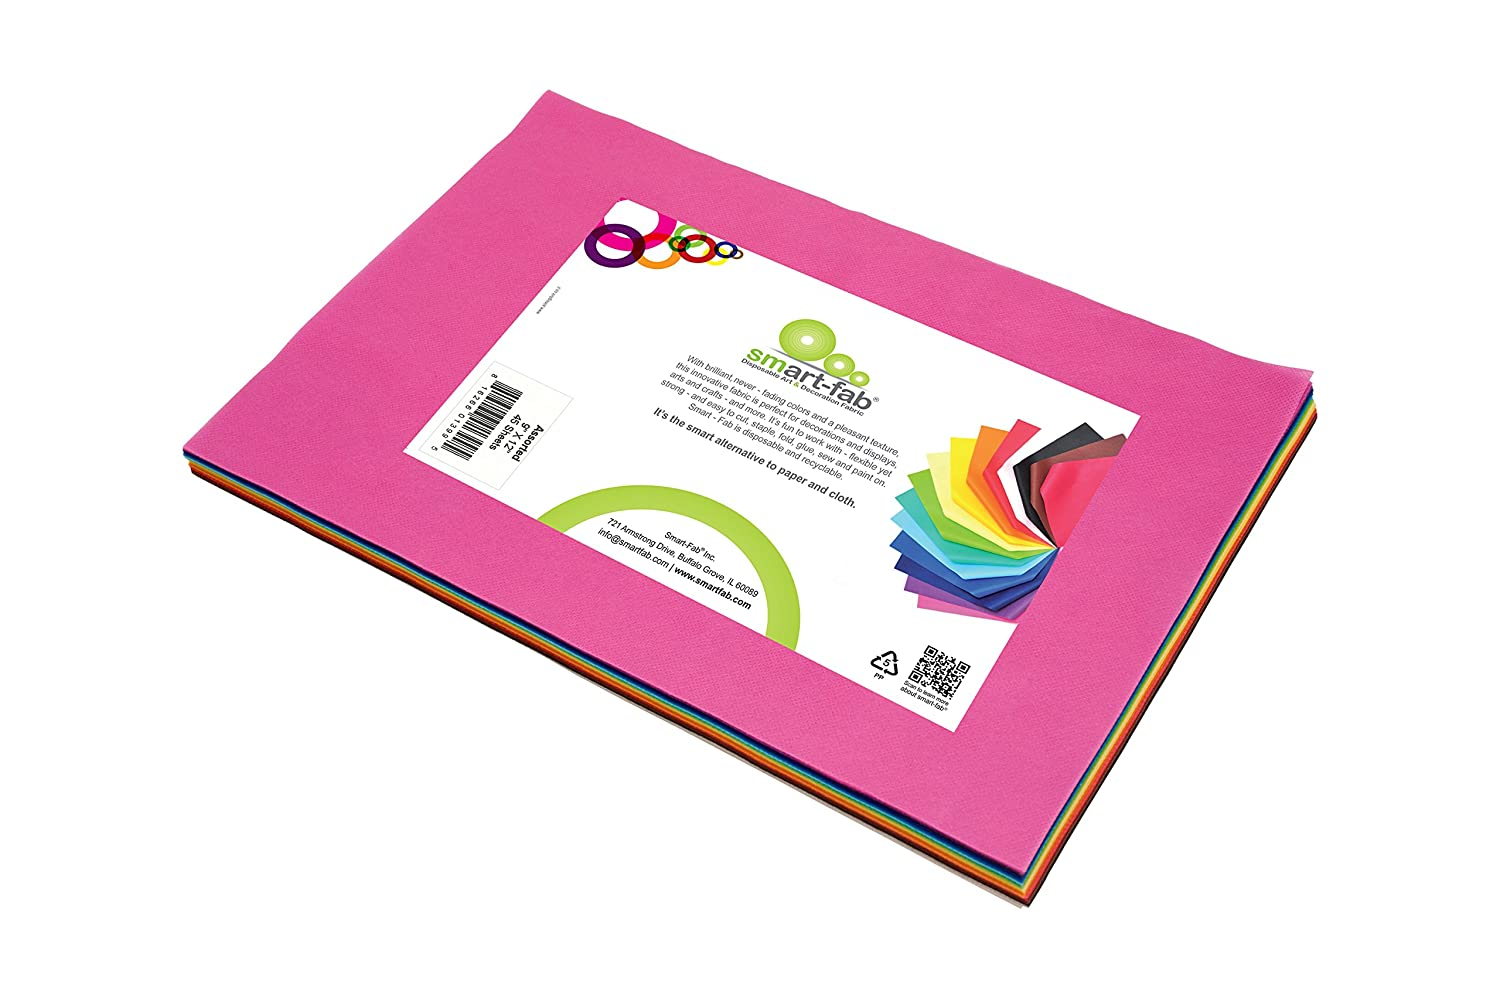 Smart-Fab Disposable Fabric, 9 x 12 Sheets, Assorted, 45 per Pack, Perfect for Schools, Classrooms, Crafts, Art, Bulletin Boards, Sew, Draw, Paint it, Unique Non Woven Material